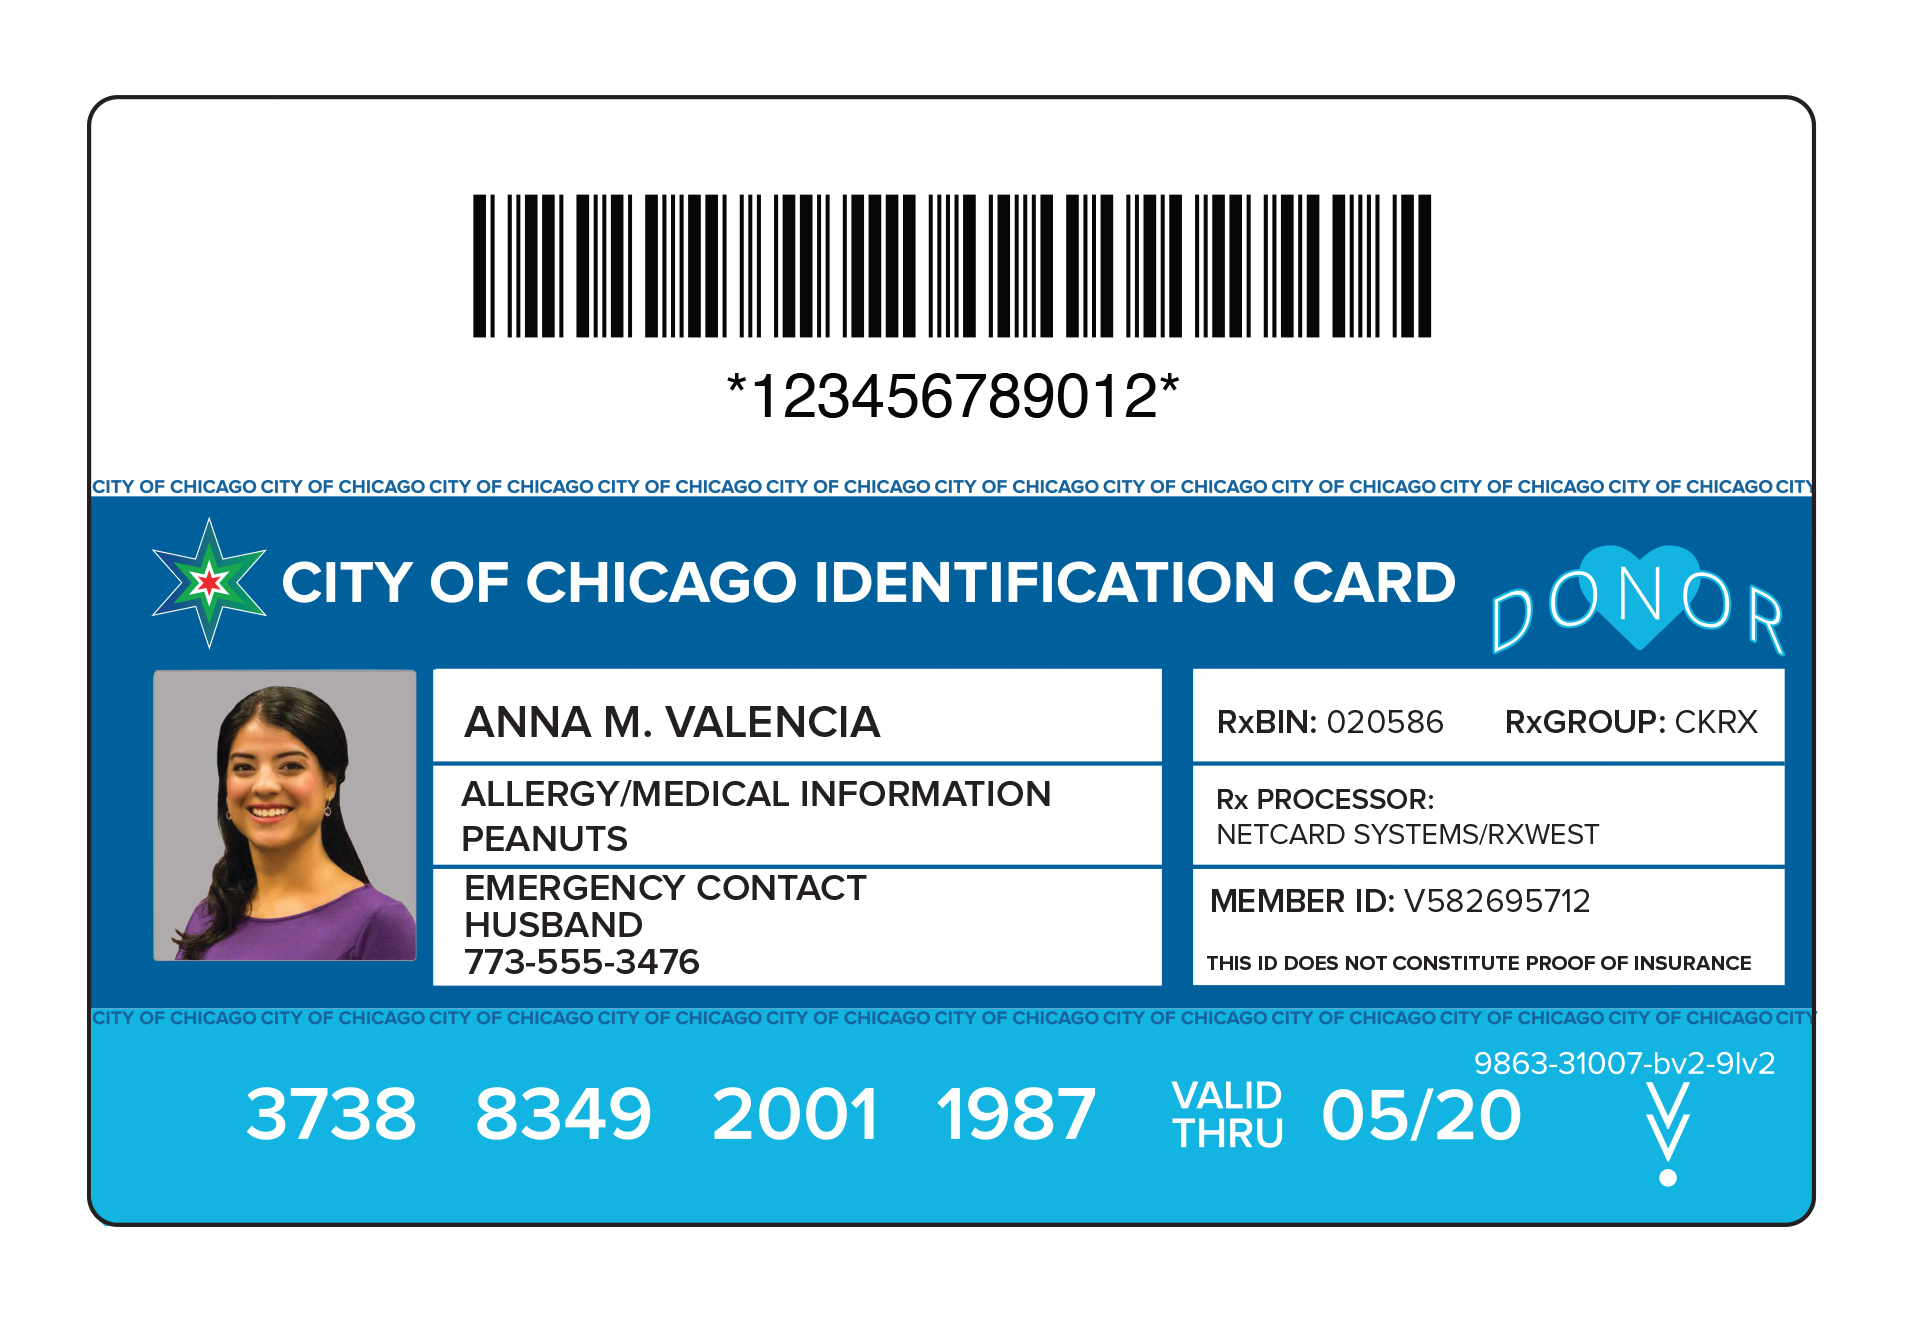 Philadelphia has hired the same vendor Chicago is using to distribute municipal ID cards to residents. This rendering shows an example of Chicago´s card.